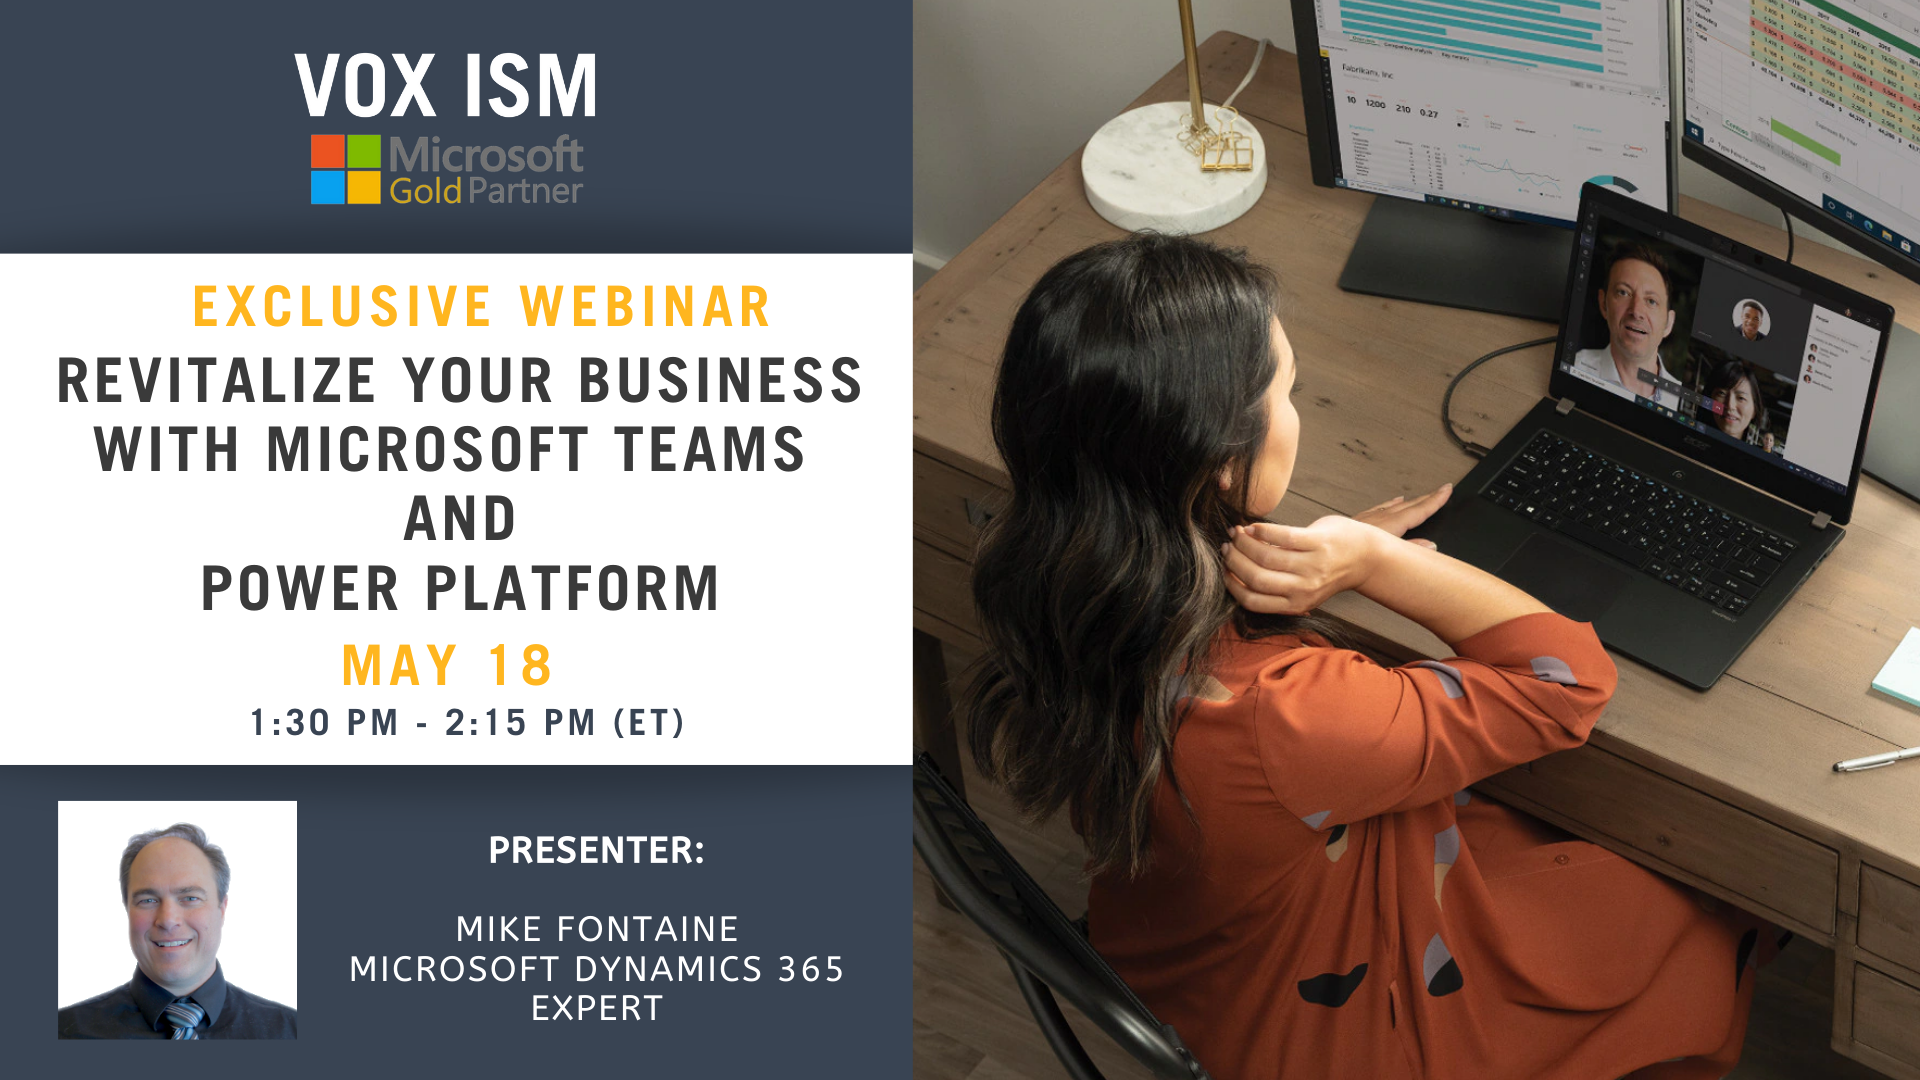 Revitalize your business with Microsoft Teams and Power Platform - May 18 - Webinar